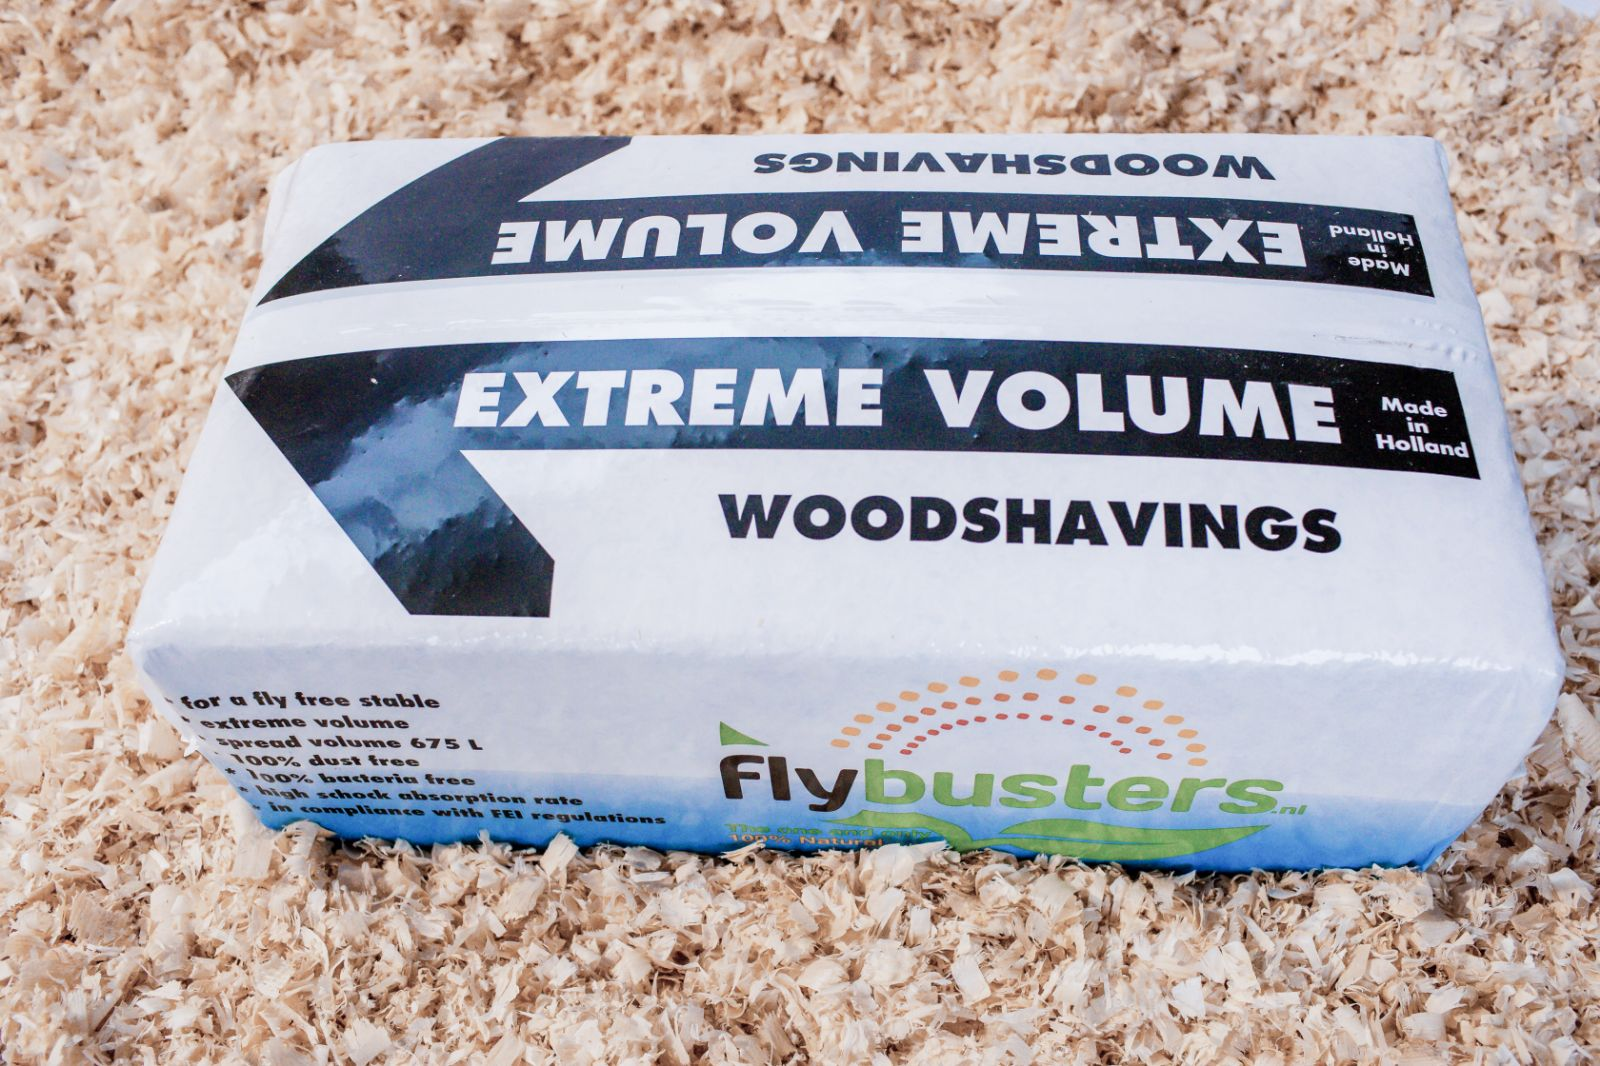 Extreme Volume® Woodshavings Flybusters